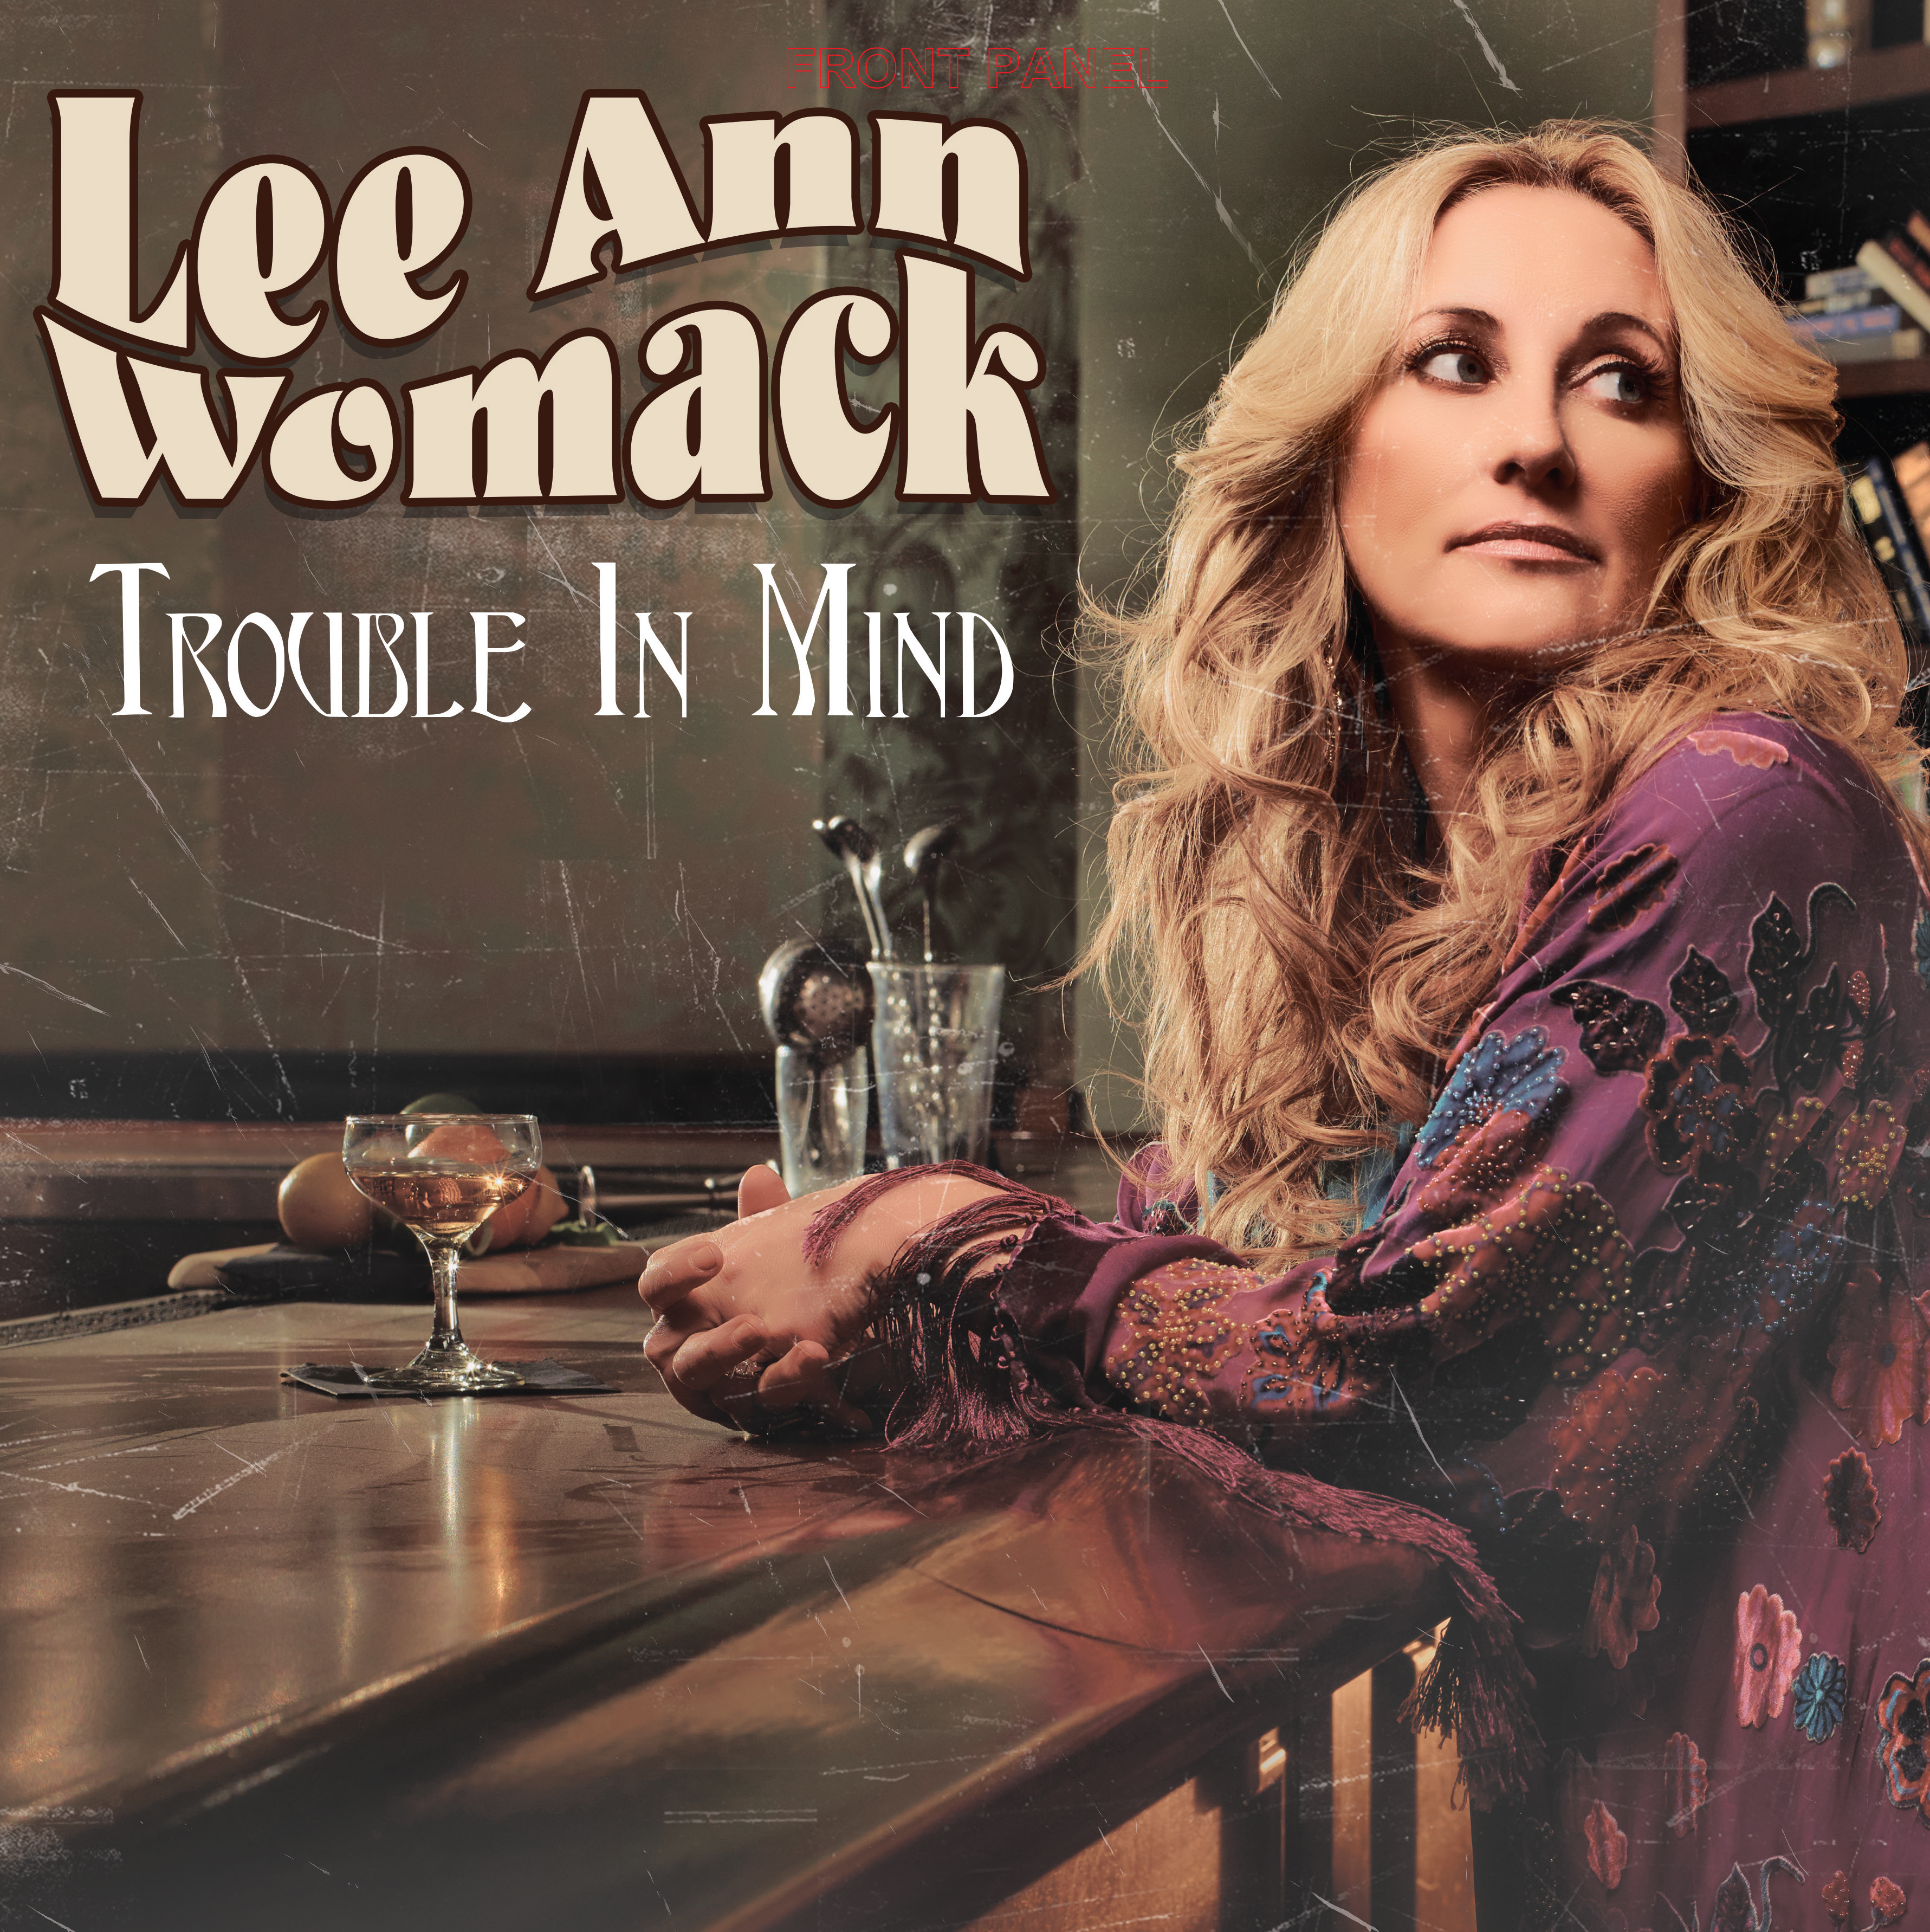 Lee Ann Womack - Trouble in Mind